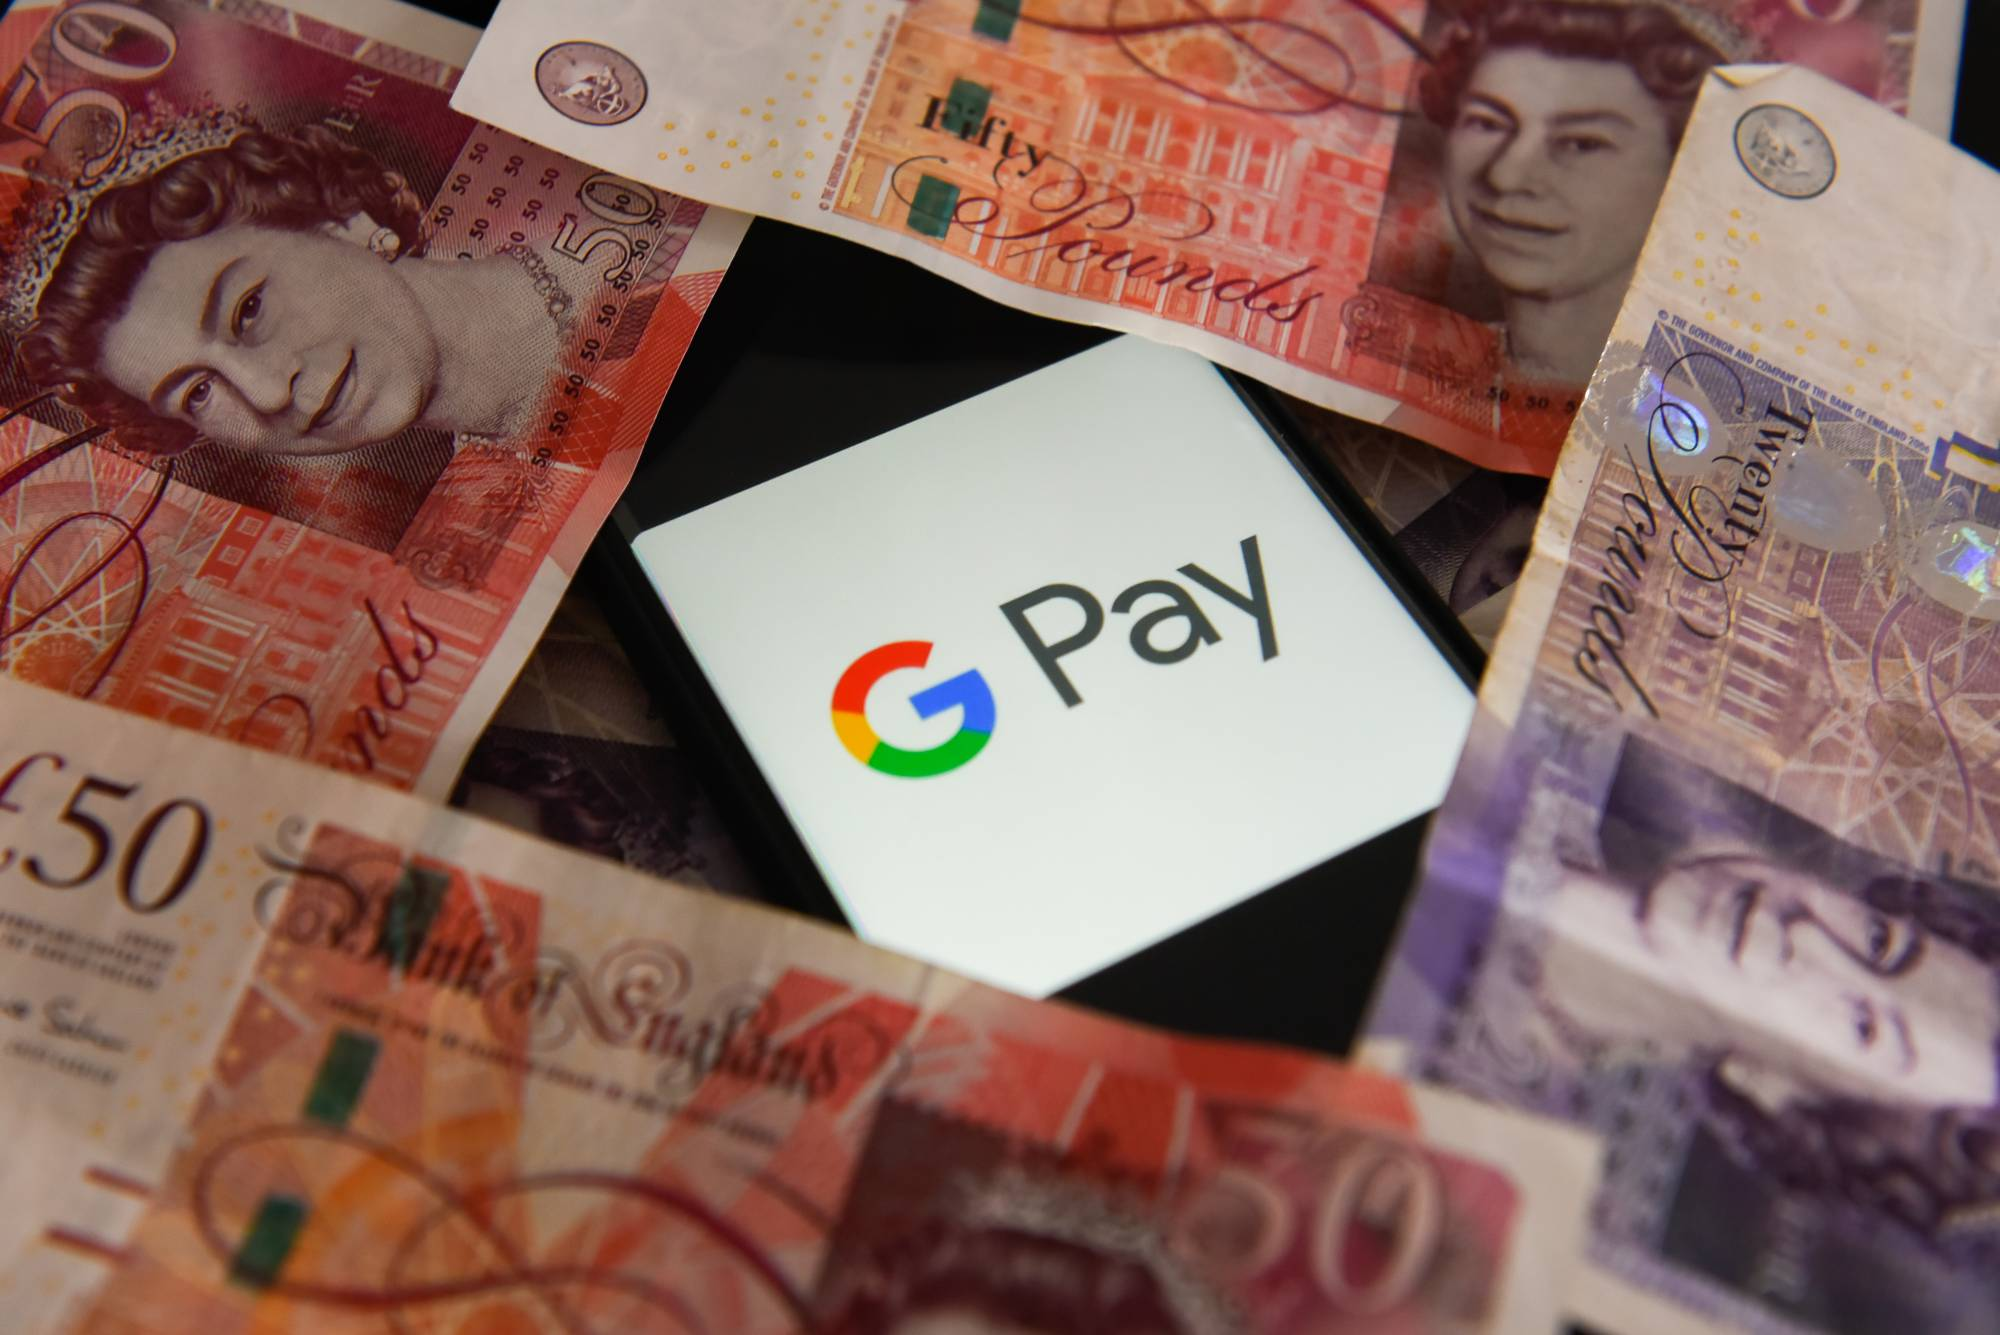 Fifty and twenty pounds bank notes and Google Pay logo are